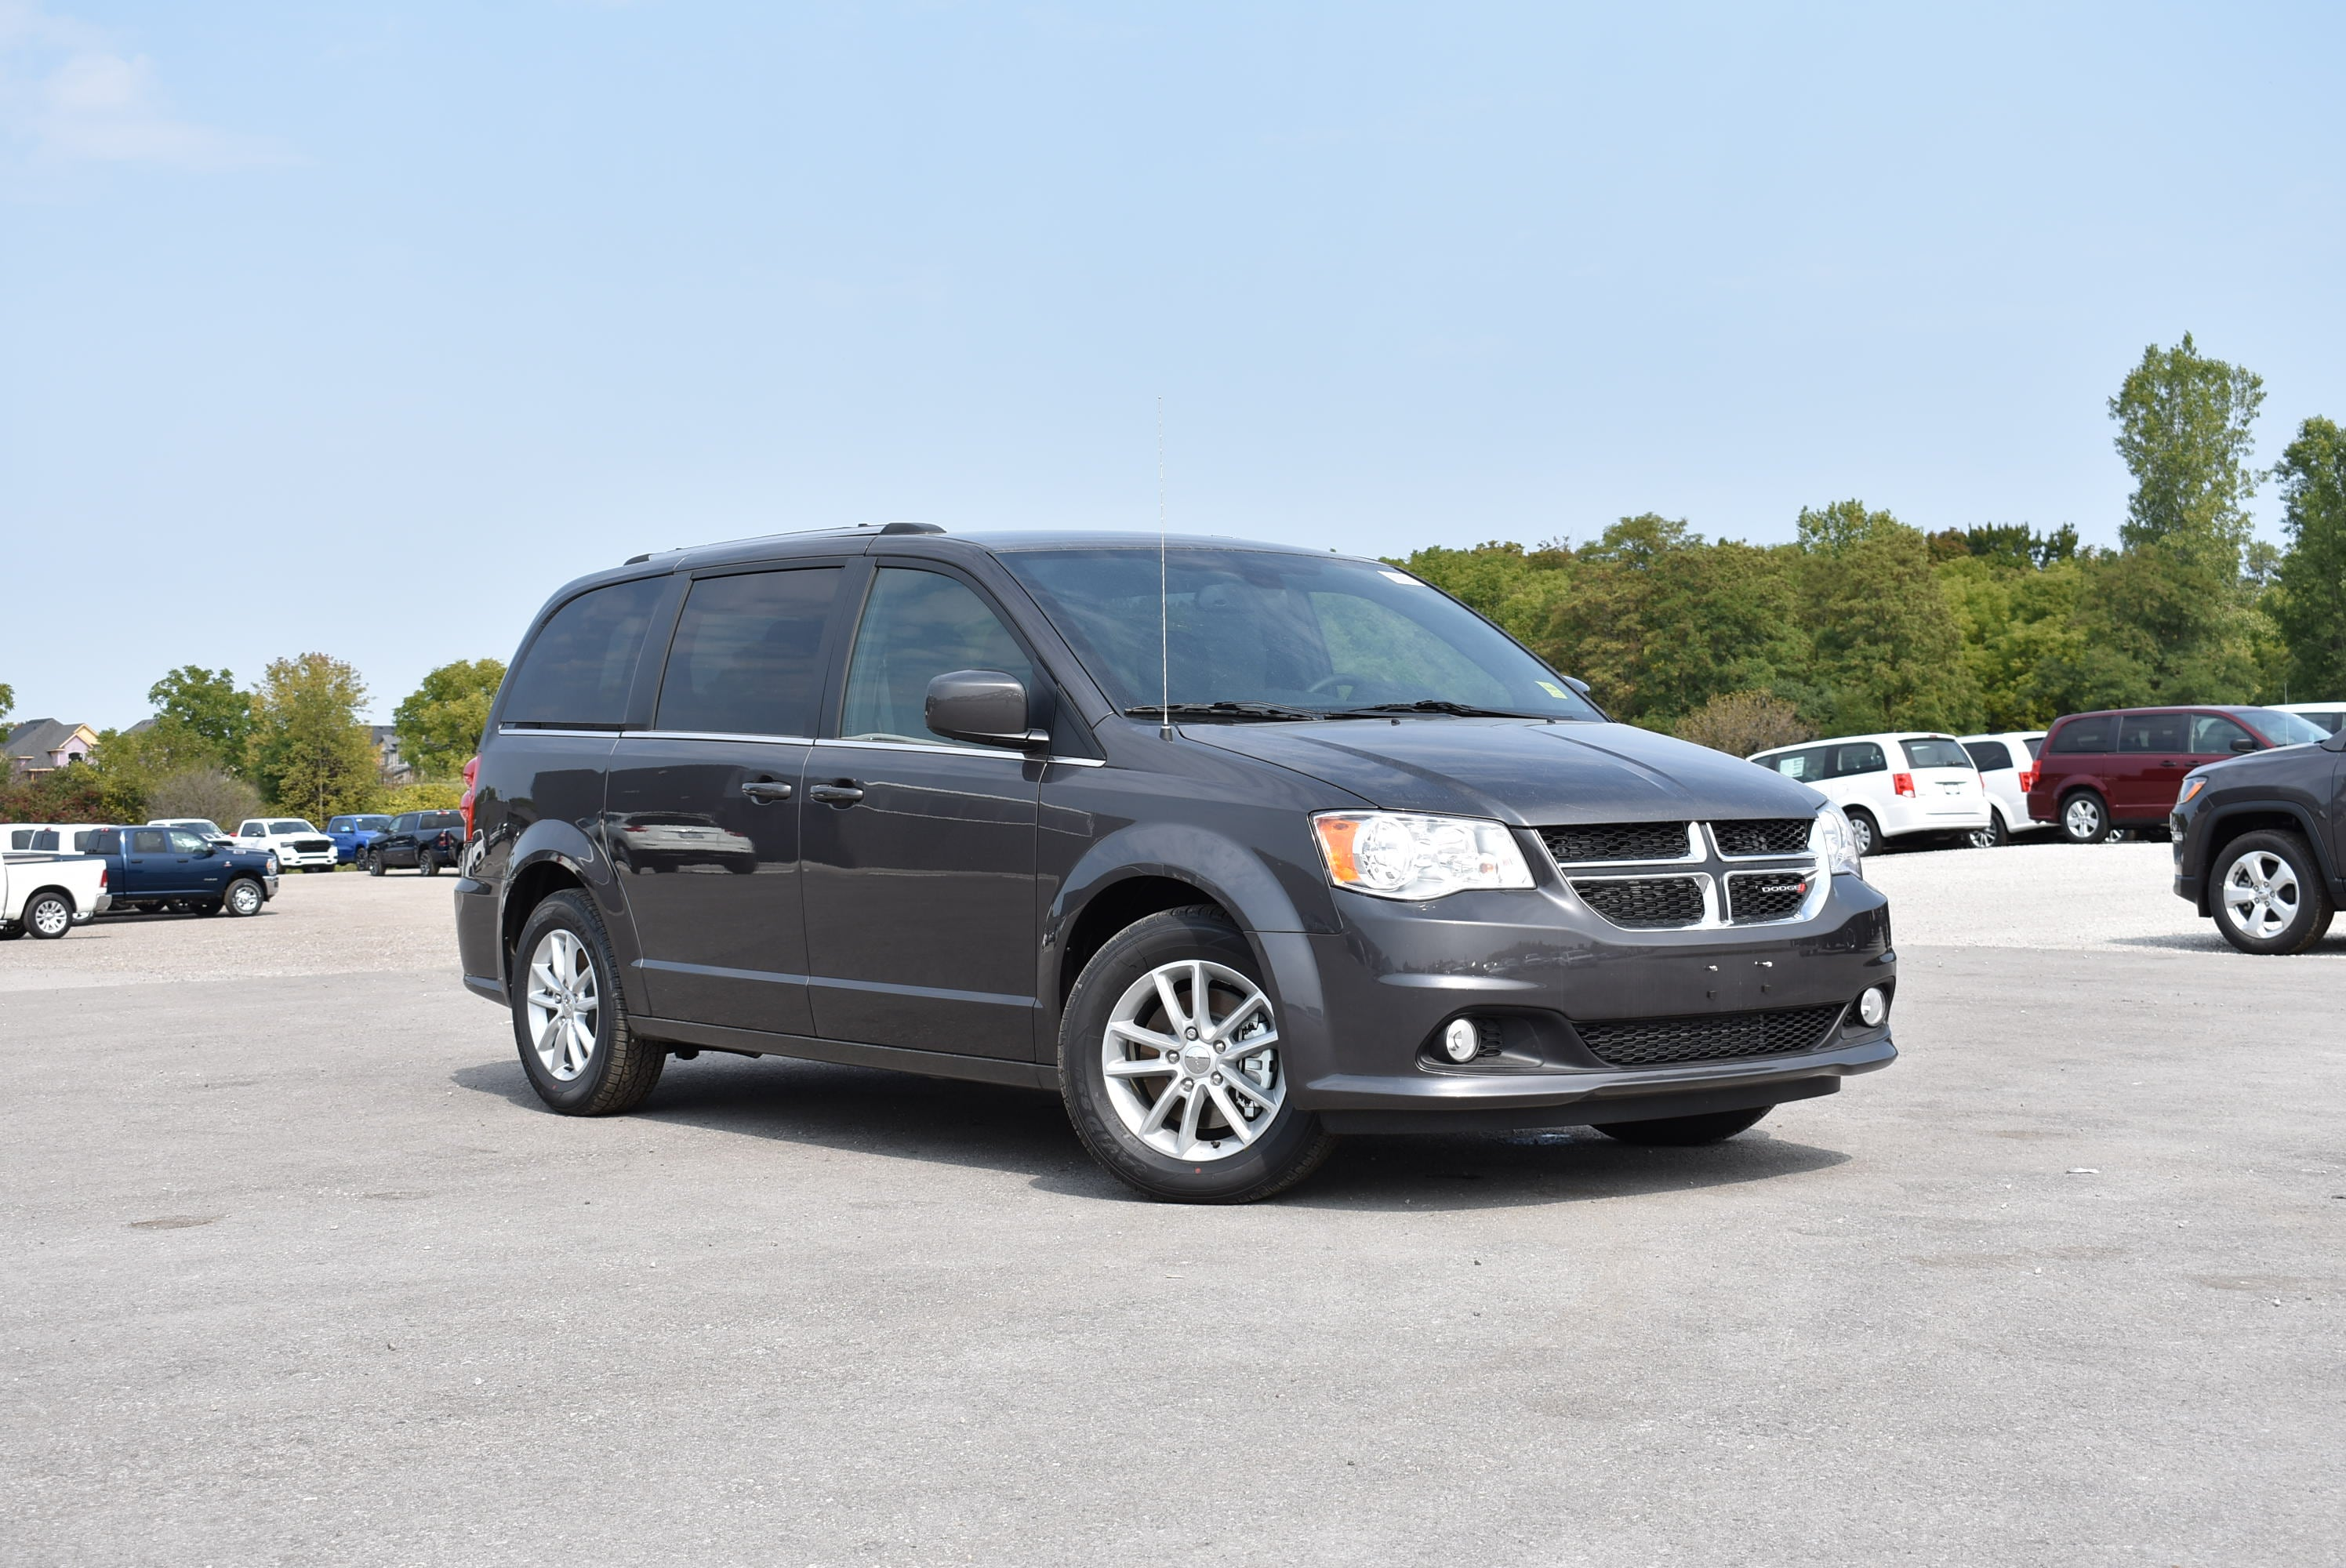 new 2020 Dodge Grand Caravan car, priced at $46,320